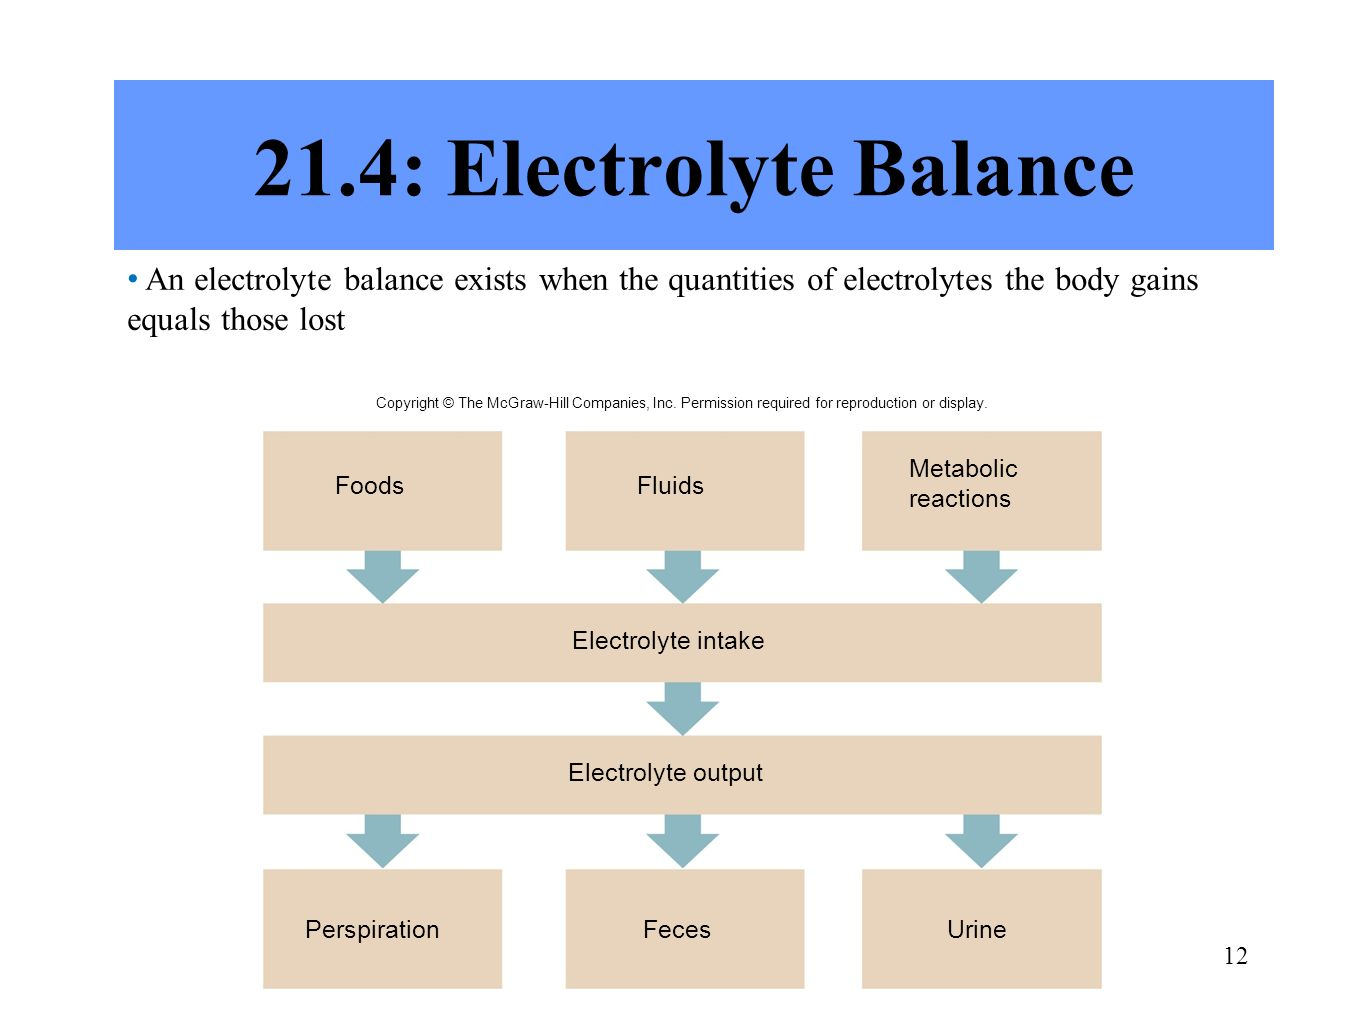 21.4: Electrolyte Balance An electrolyte balance exists when the quantities of electrolytes the body gains equals those lost.